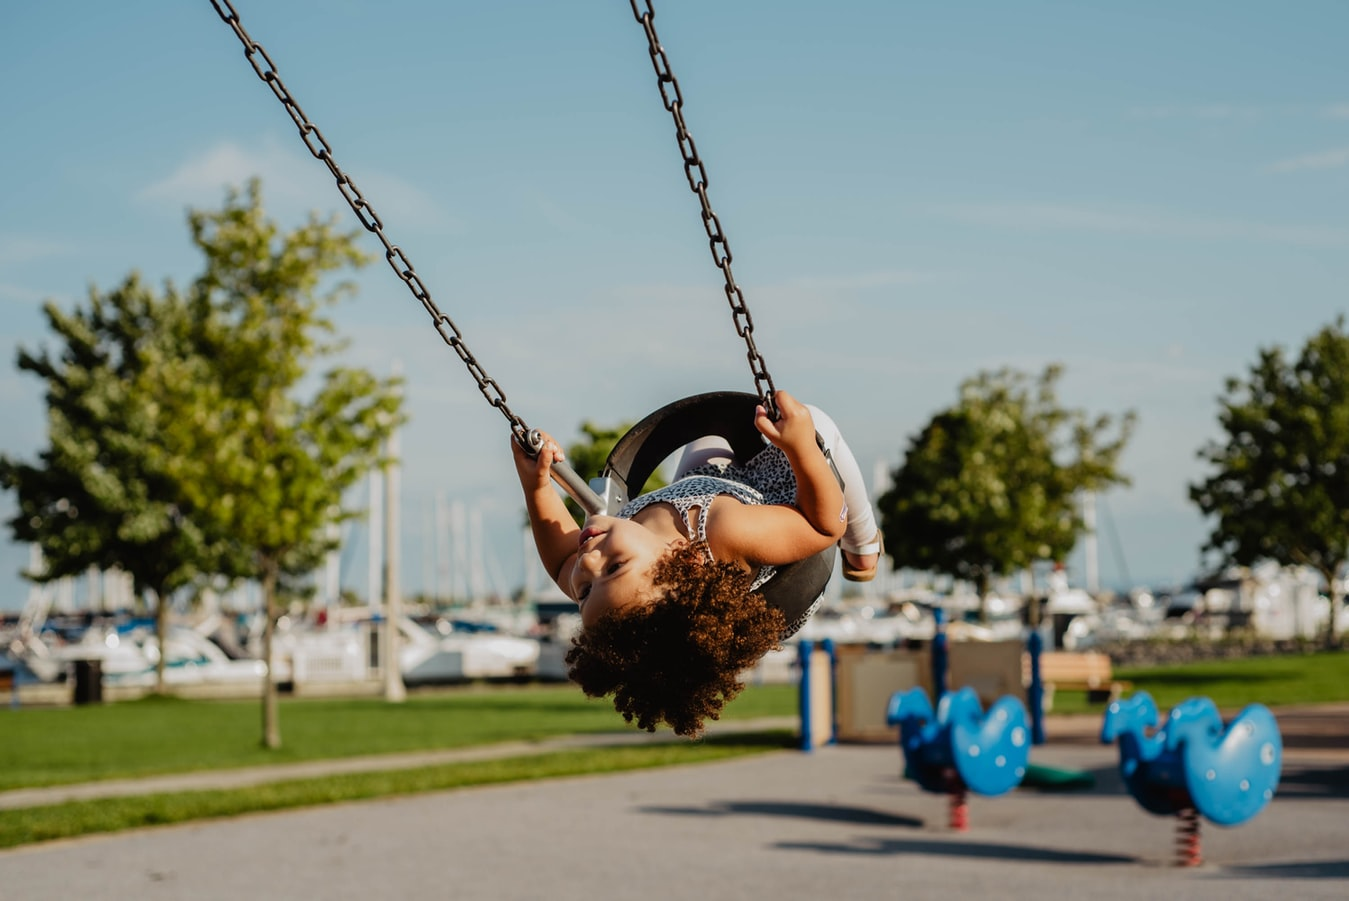 Best Outdoor Toys for Toddlers of 2020